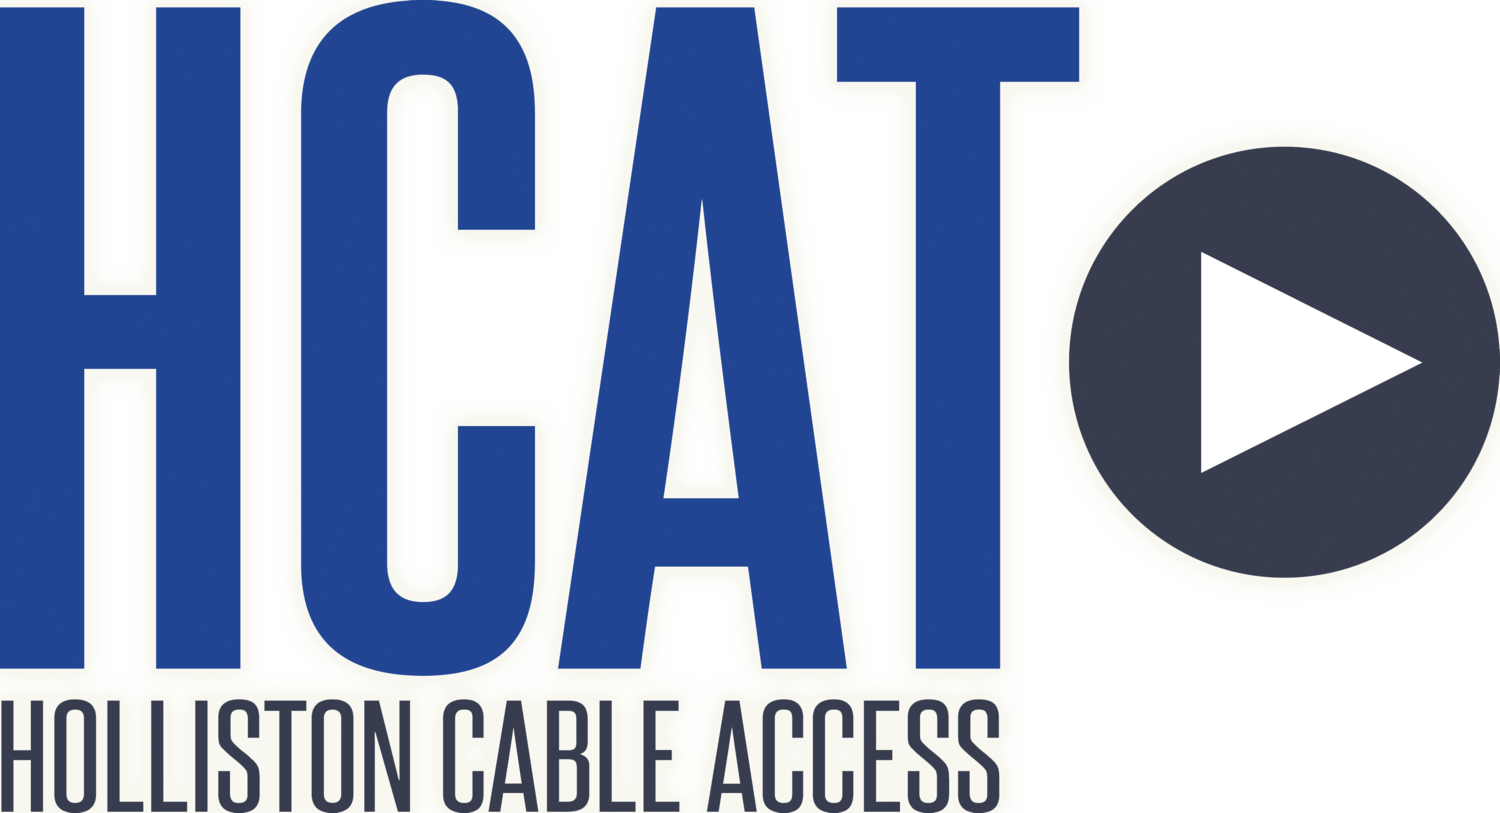 Holliston Cable Access